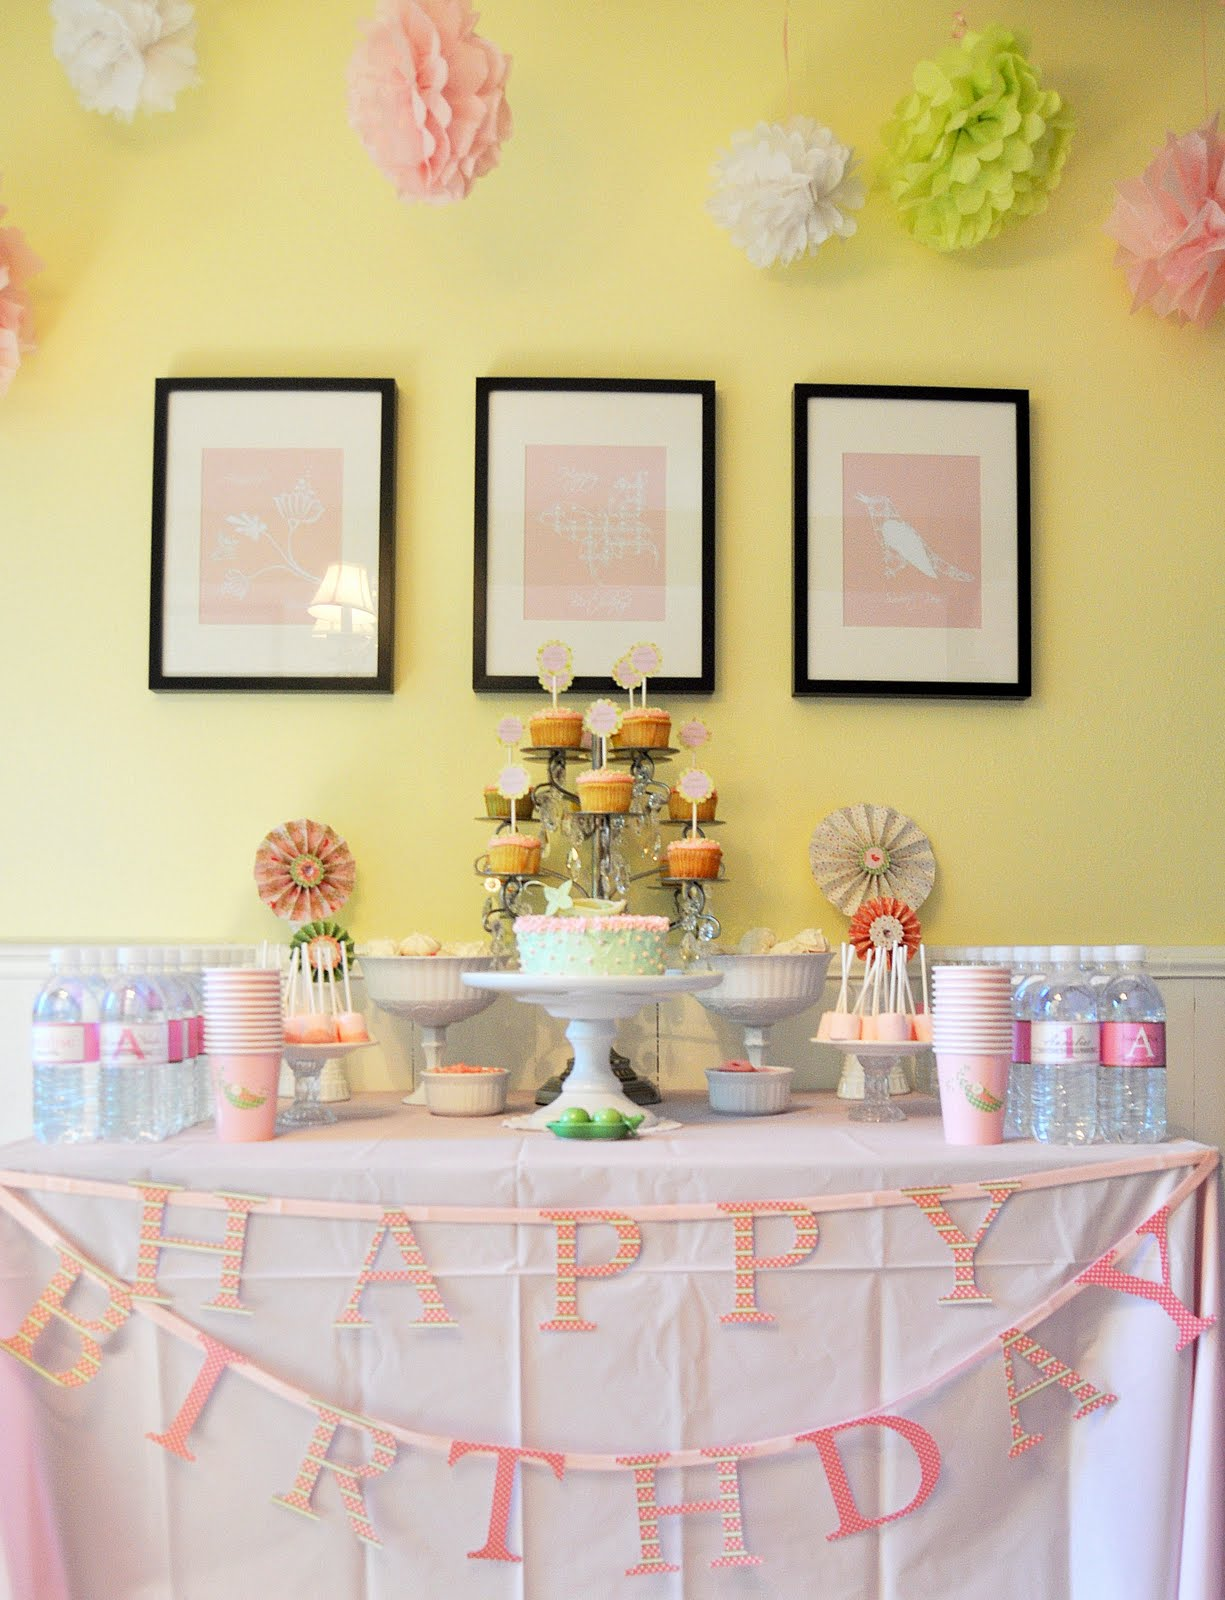 BLAH BLAH BLOGGING: Sweet Pea Birthday Party